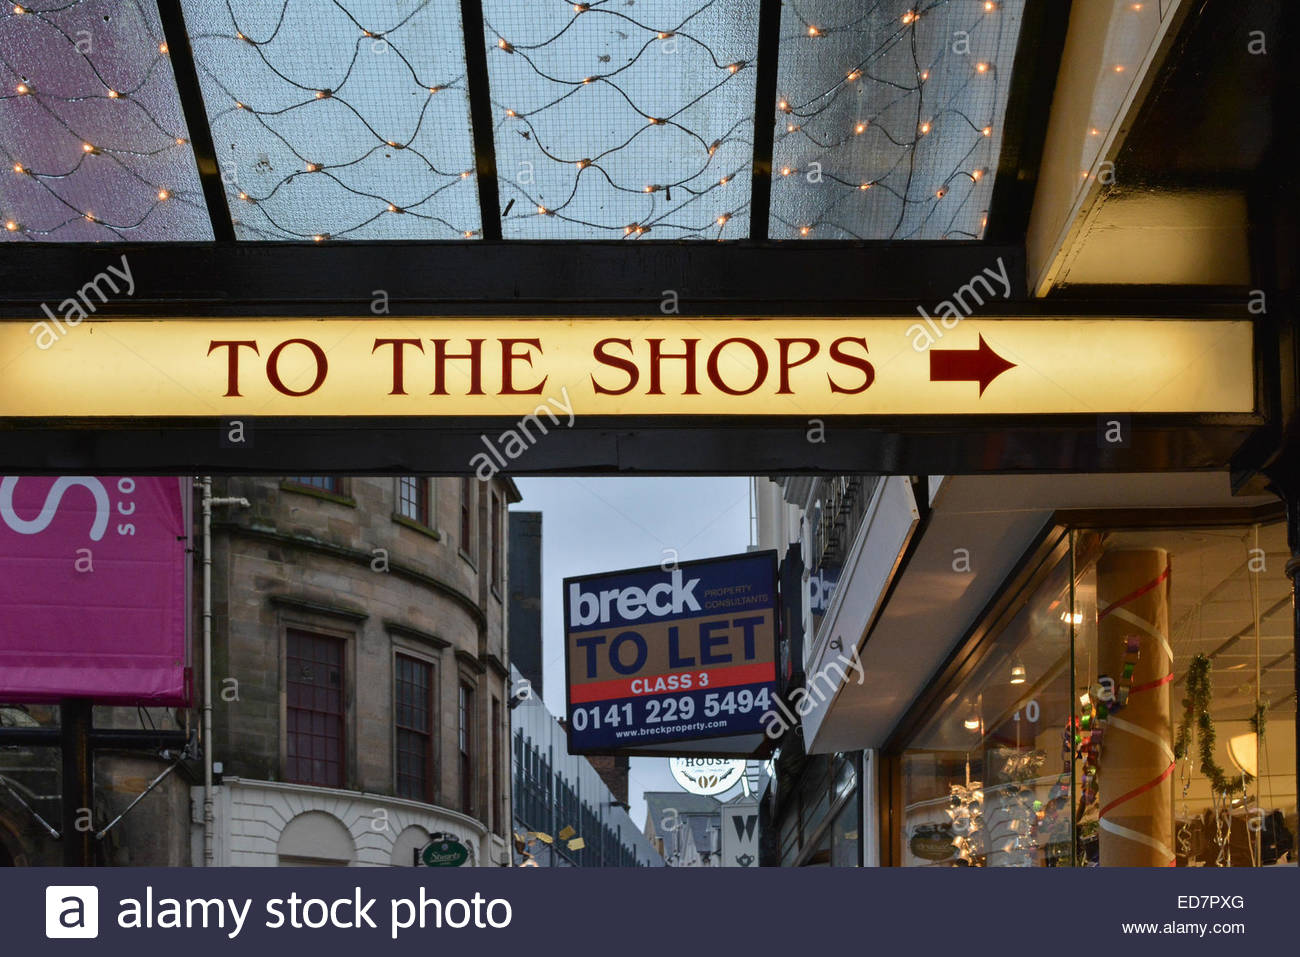 traditionelle, THE SHOPS Schild und Pfeil nach The Stirling Arcade, King Street, Stirling, Schottland, UK Stockbild